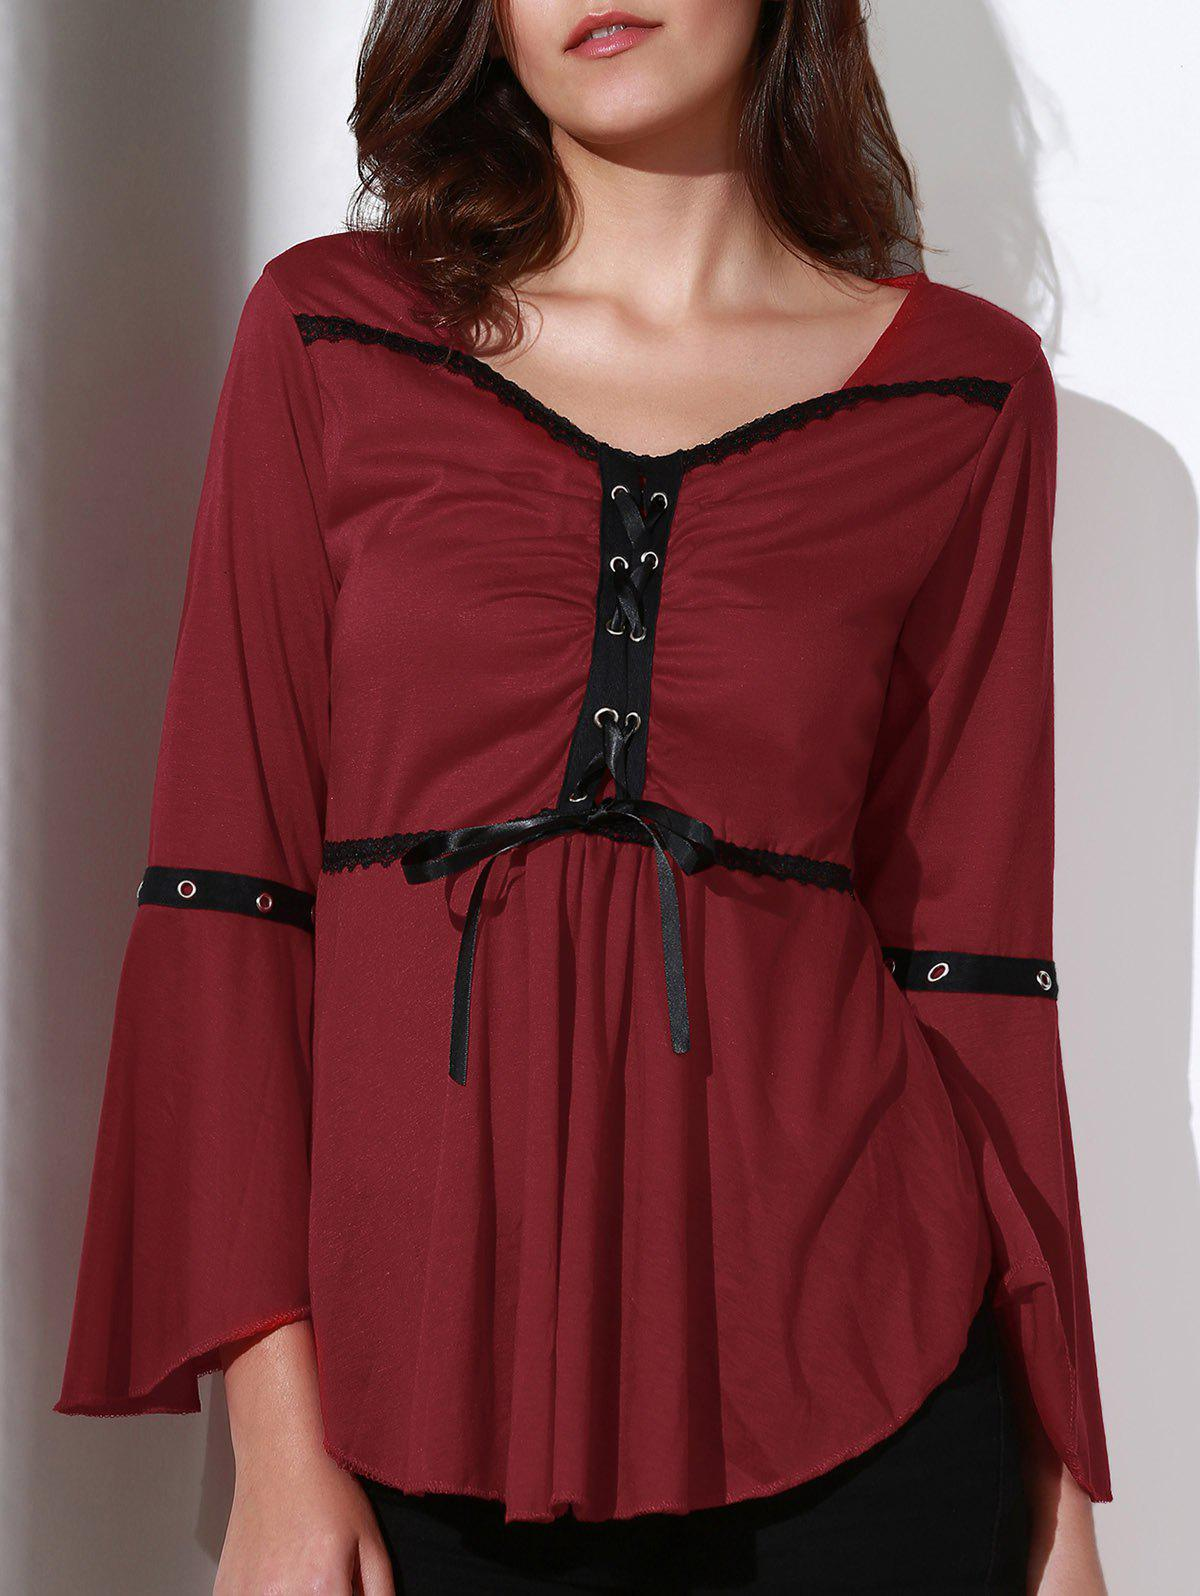 Best Stylish Sweetheart Neck 3/4 Sleeve Lace-Up Spliced Women's Blouse